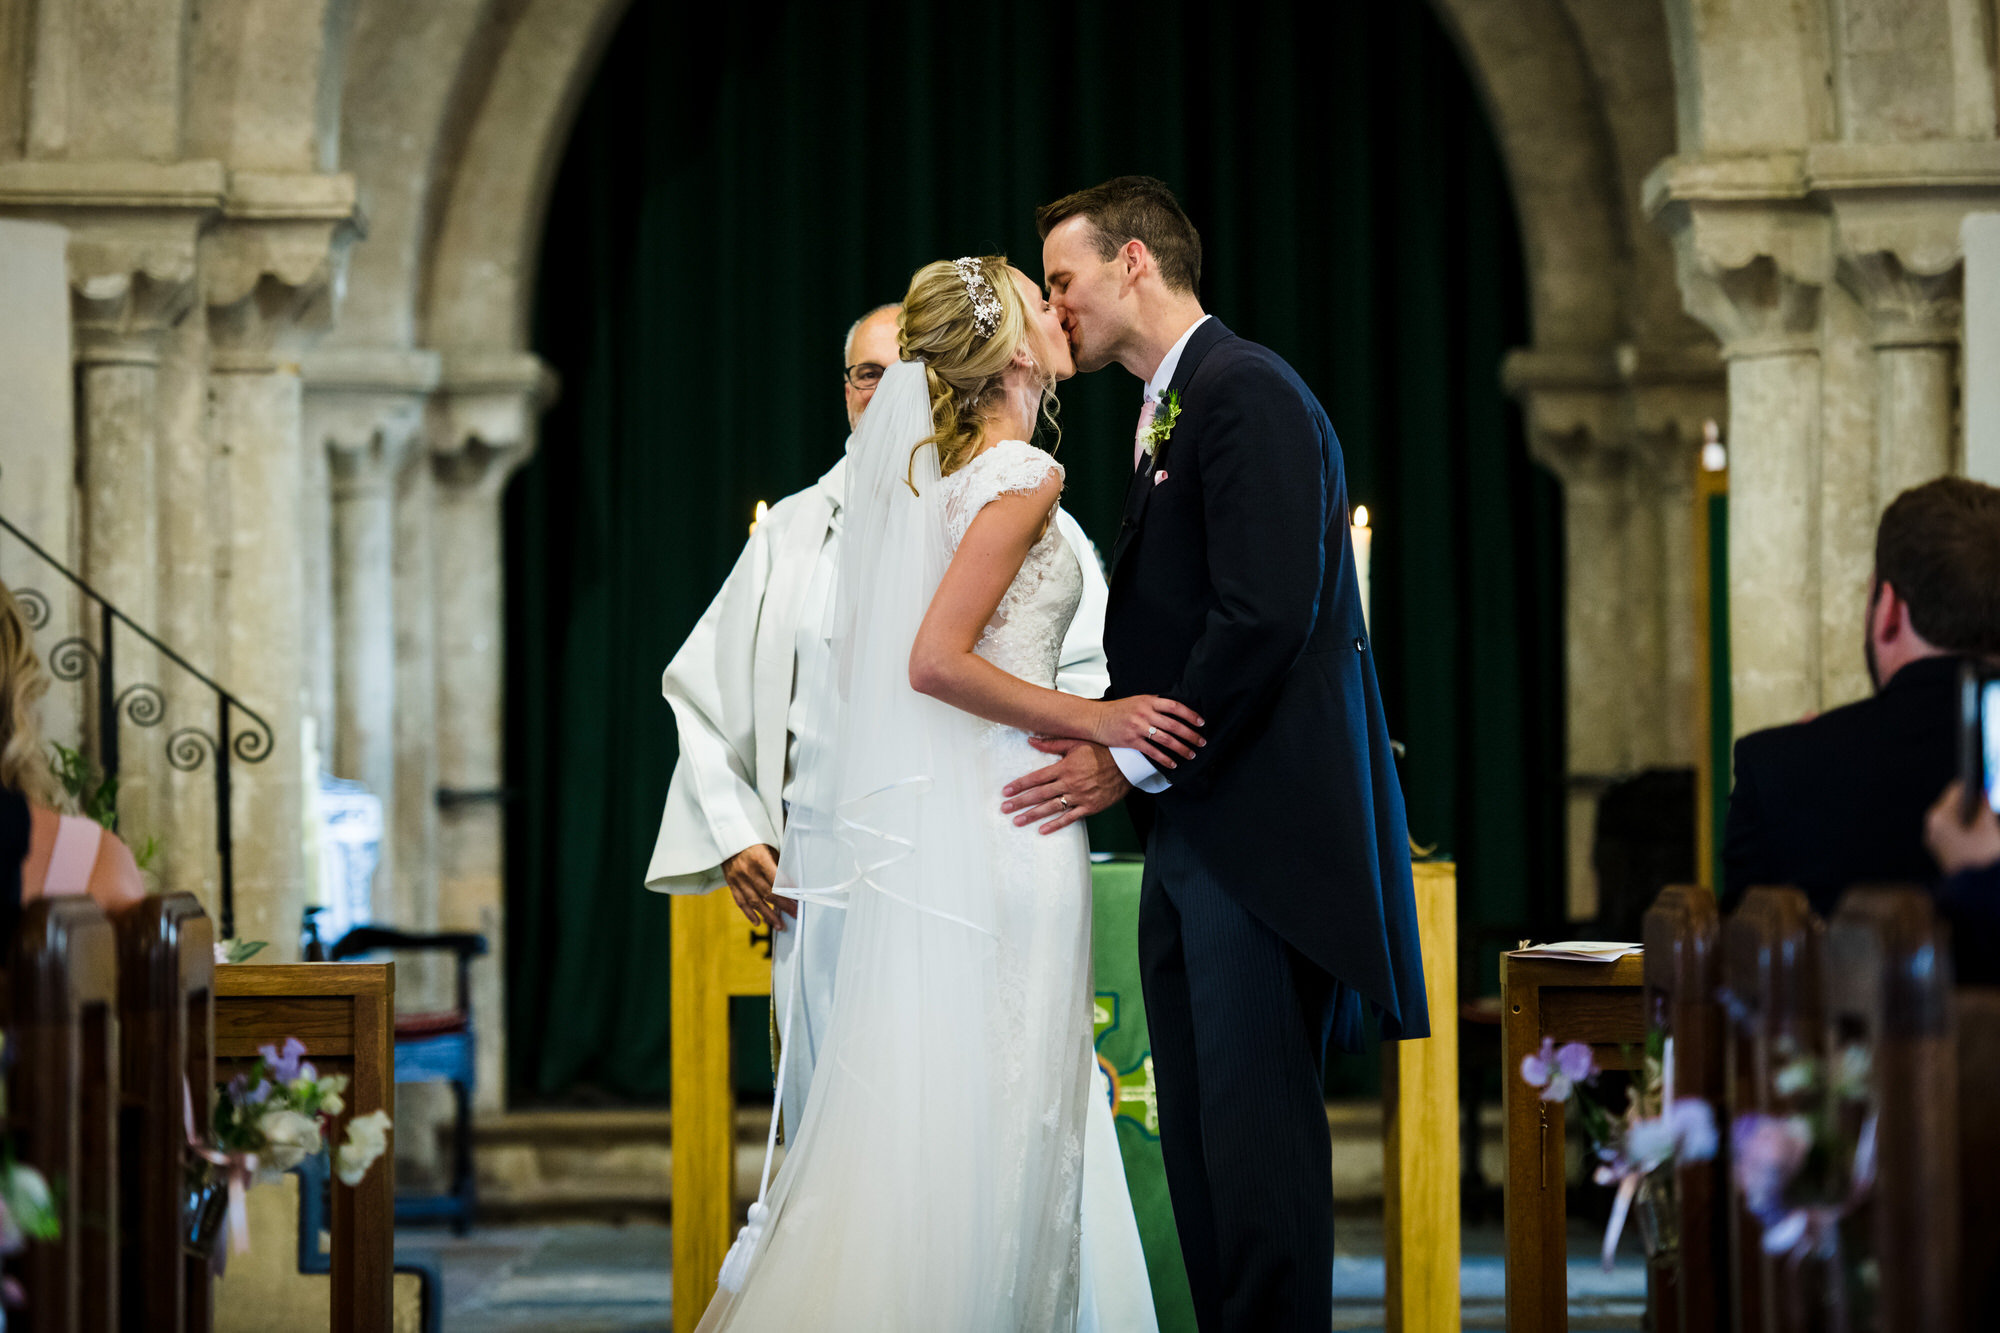 St marys church olveston wedding 9